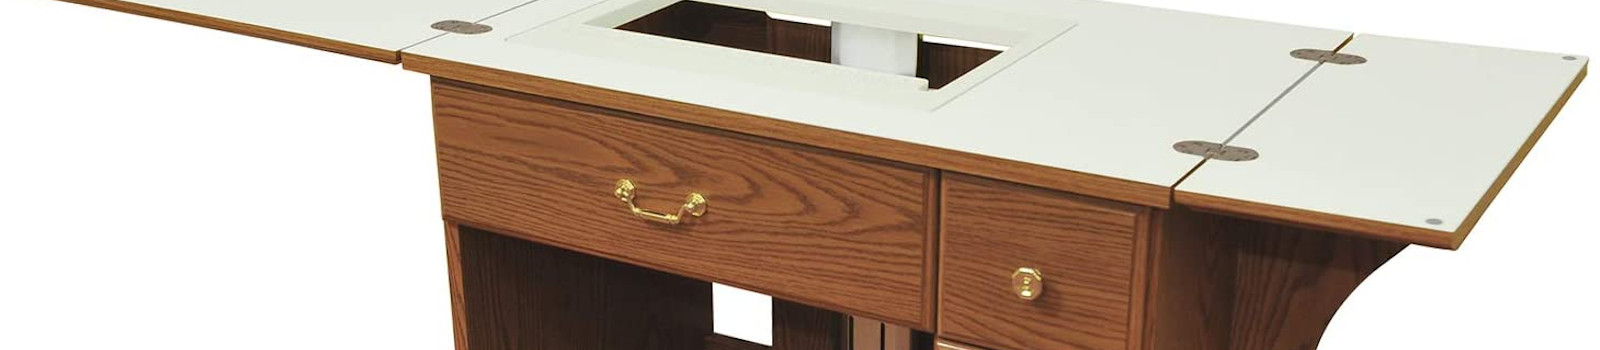 Arrow Auntie Sewing Cabinete Cabinet